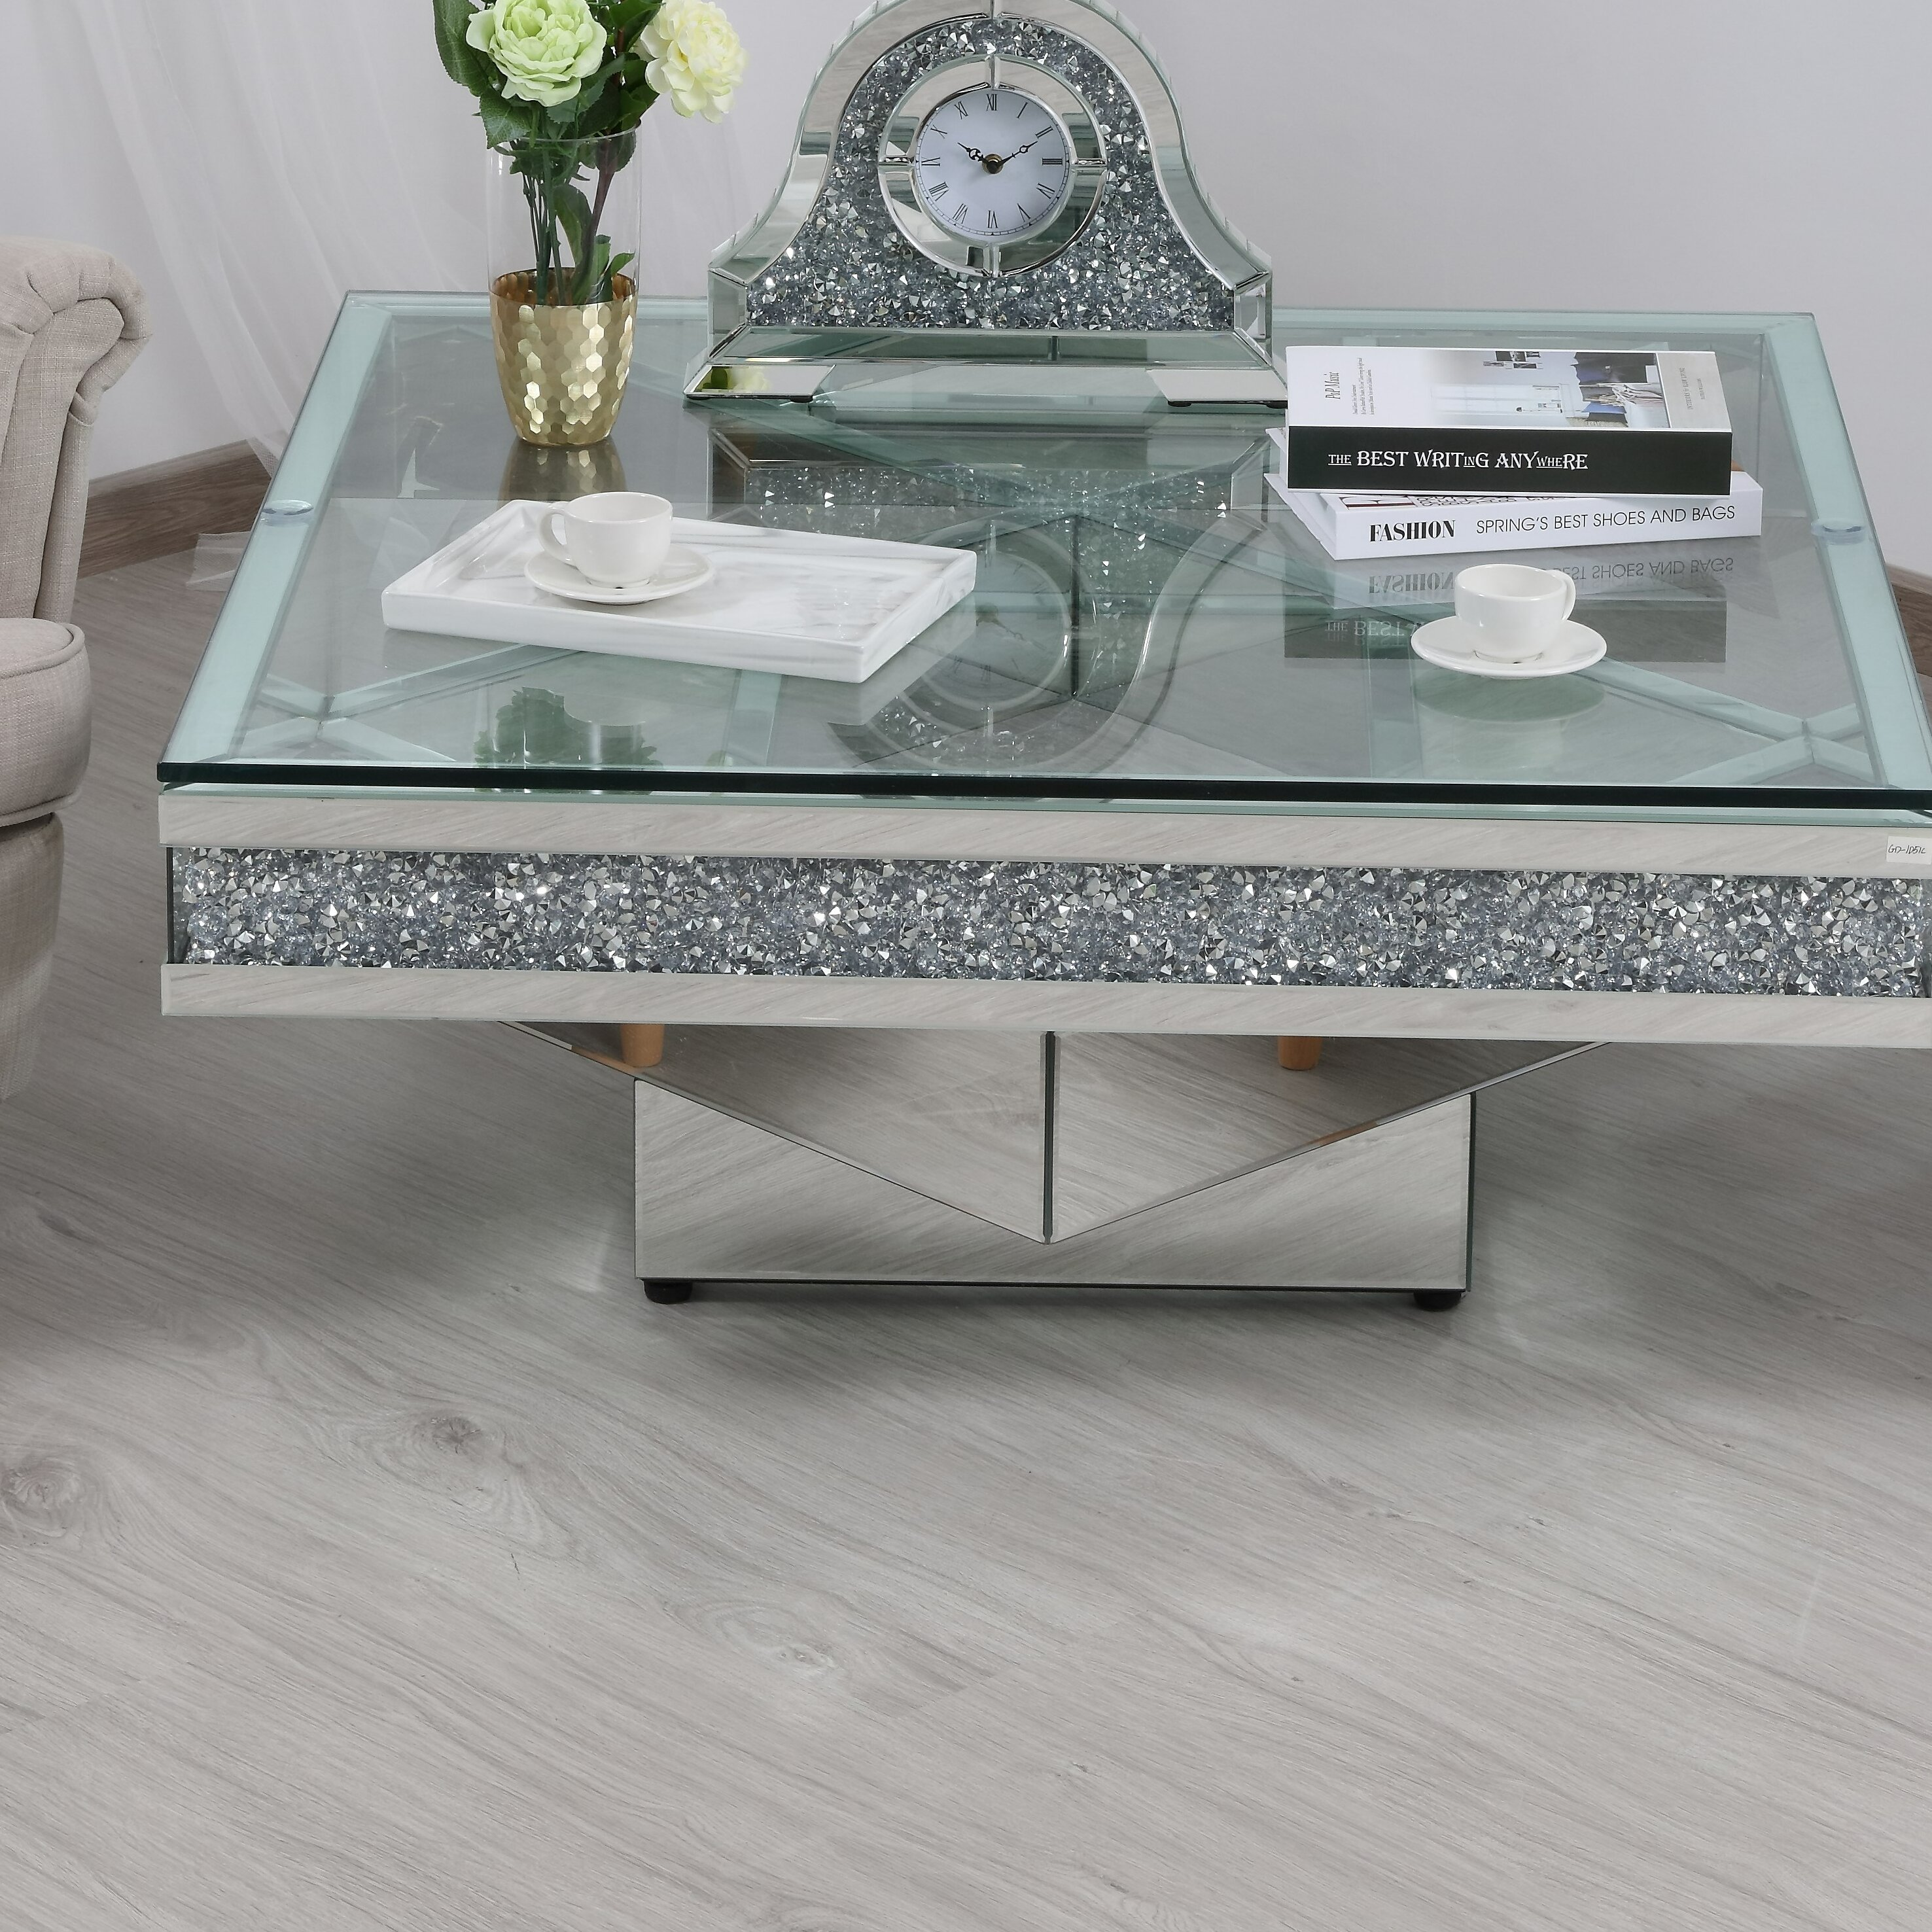 Aaryahi Mirrored Coffee Table